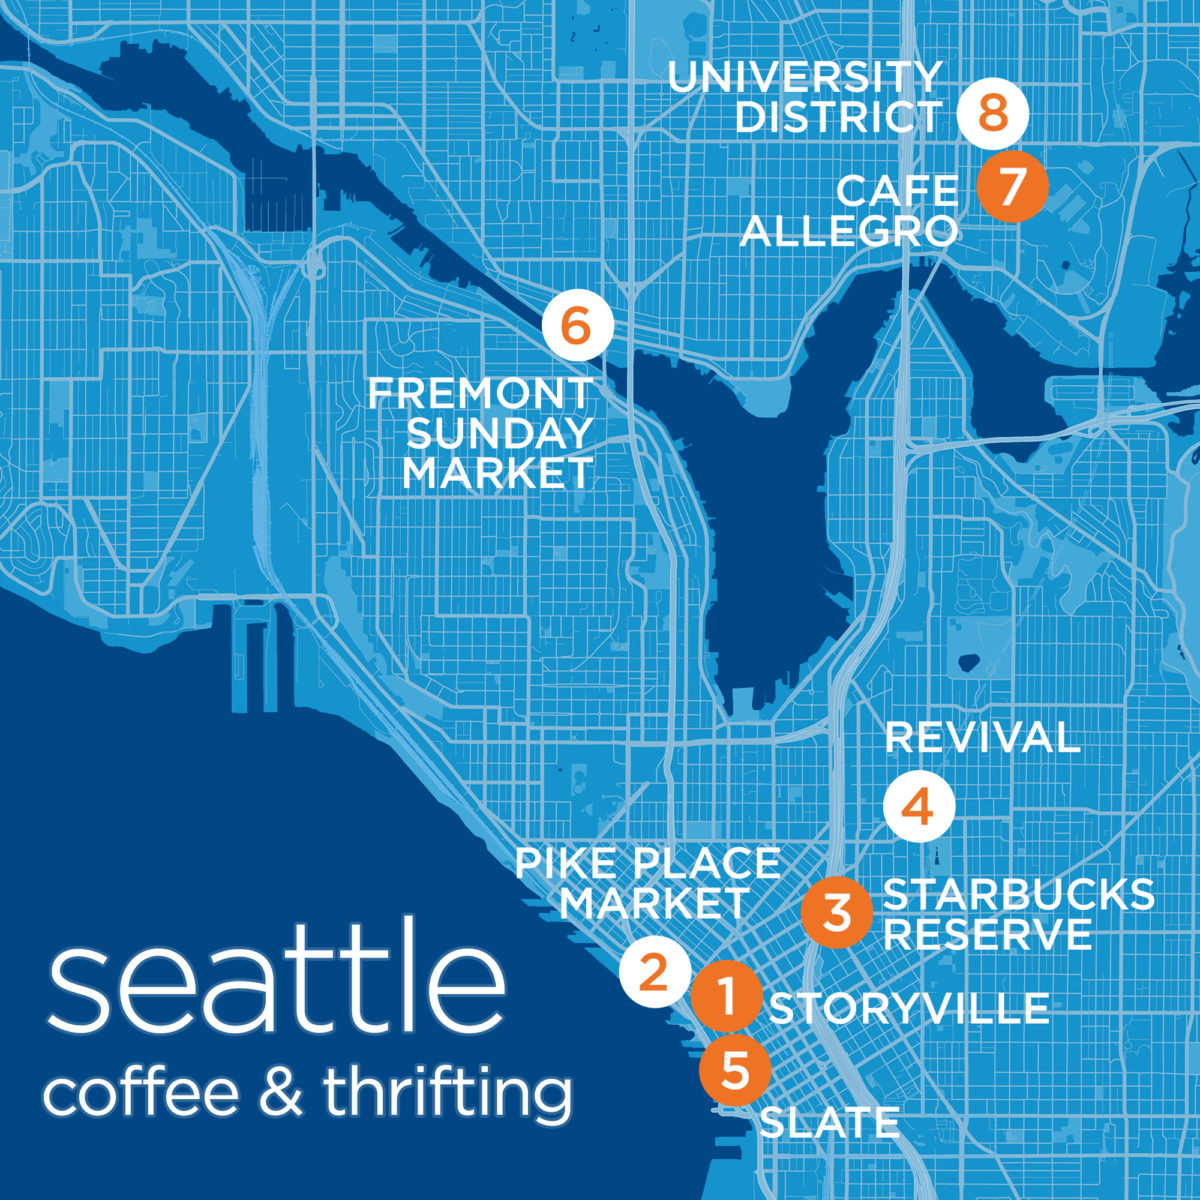 Seattle Coffee Shops and Thrifting Tour [MAP]